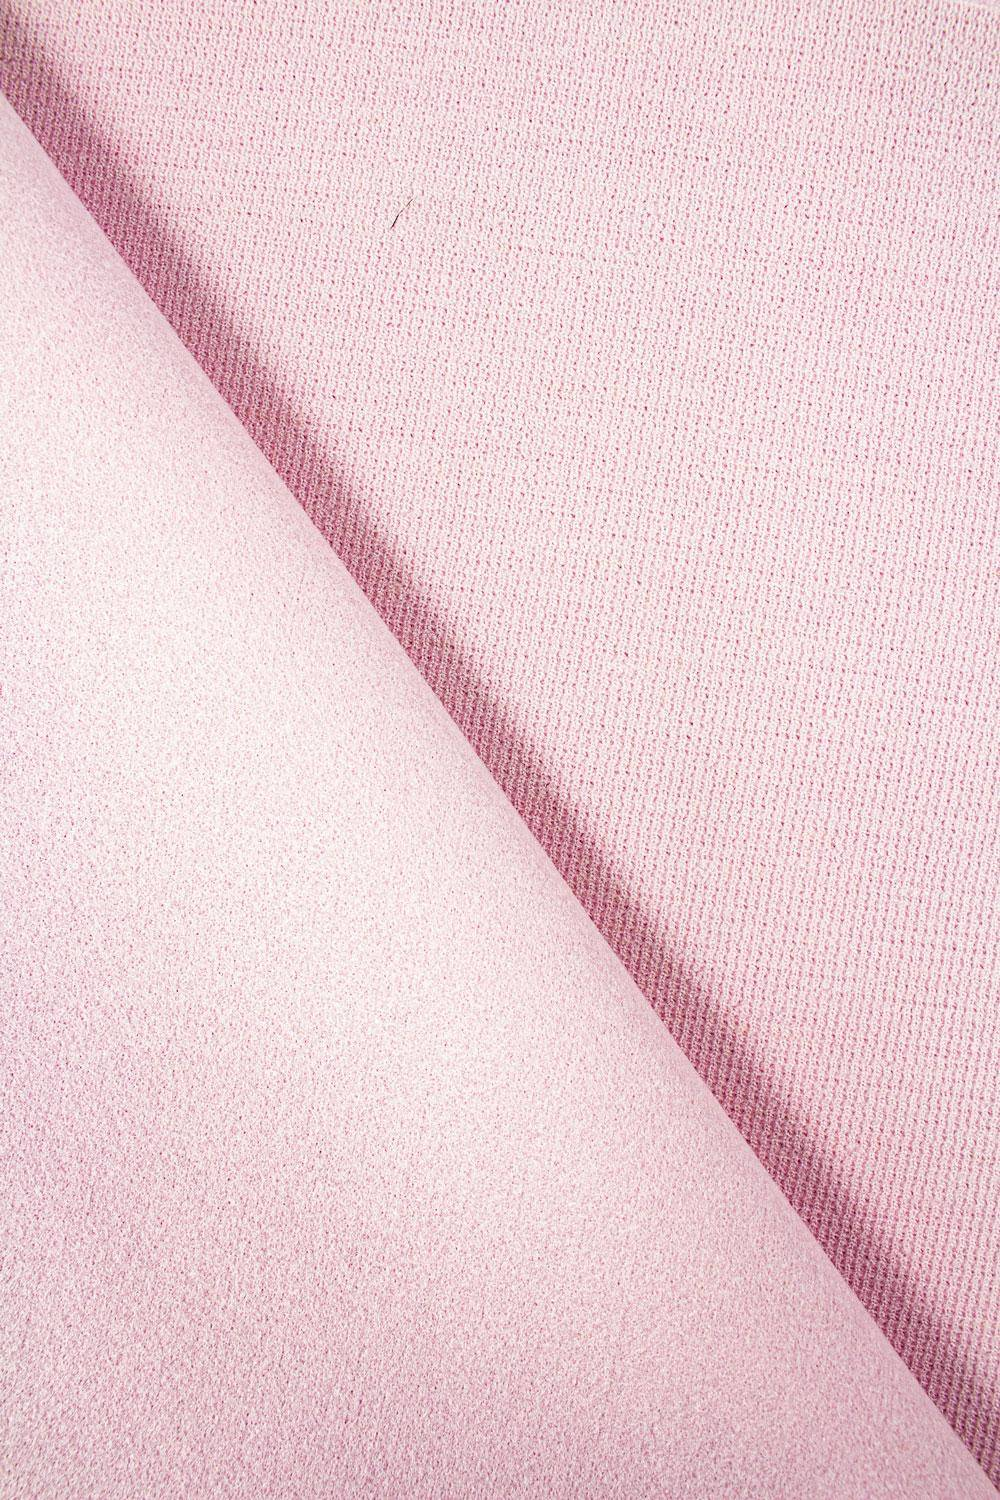 Fabric - Duffle Fleece - Powder Pink - 150 cm - 330 g/m2